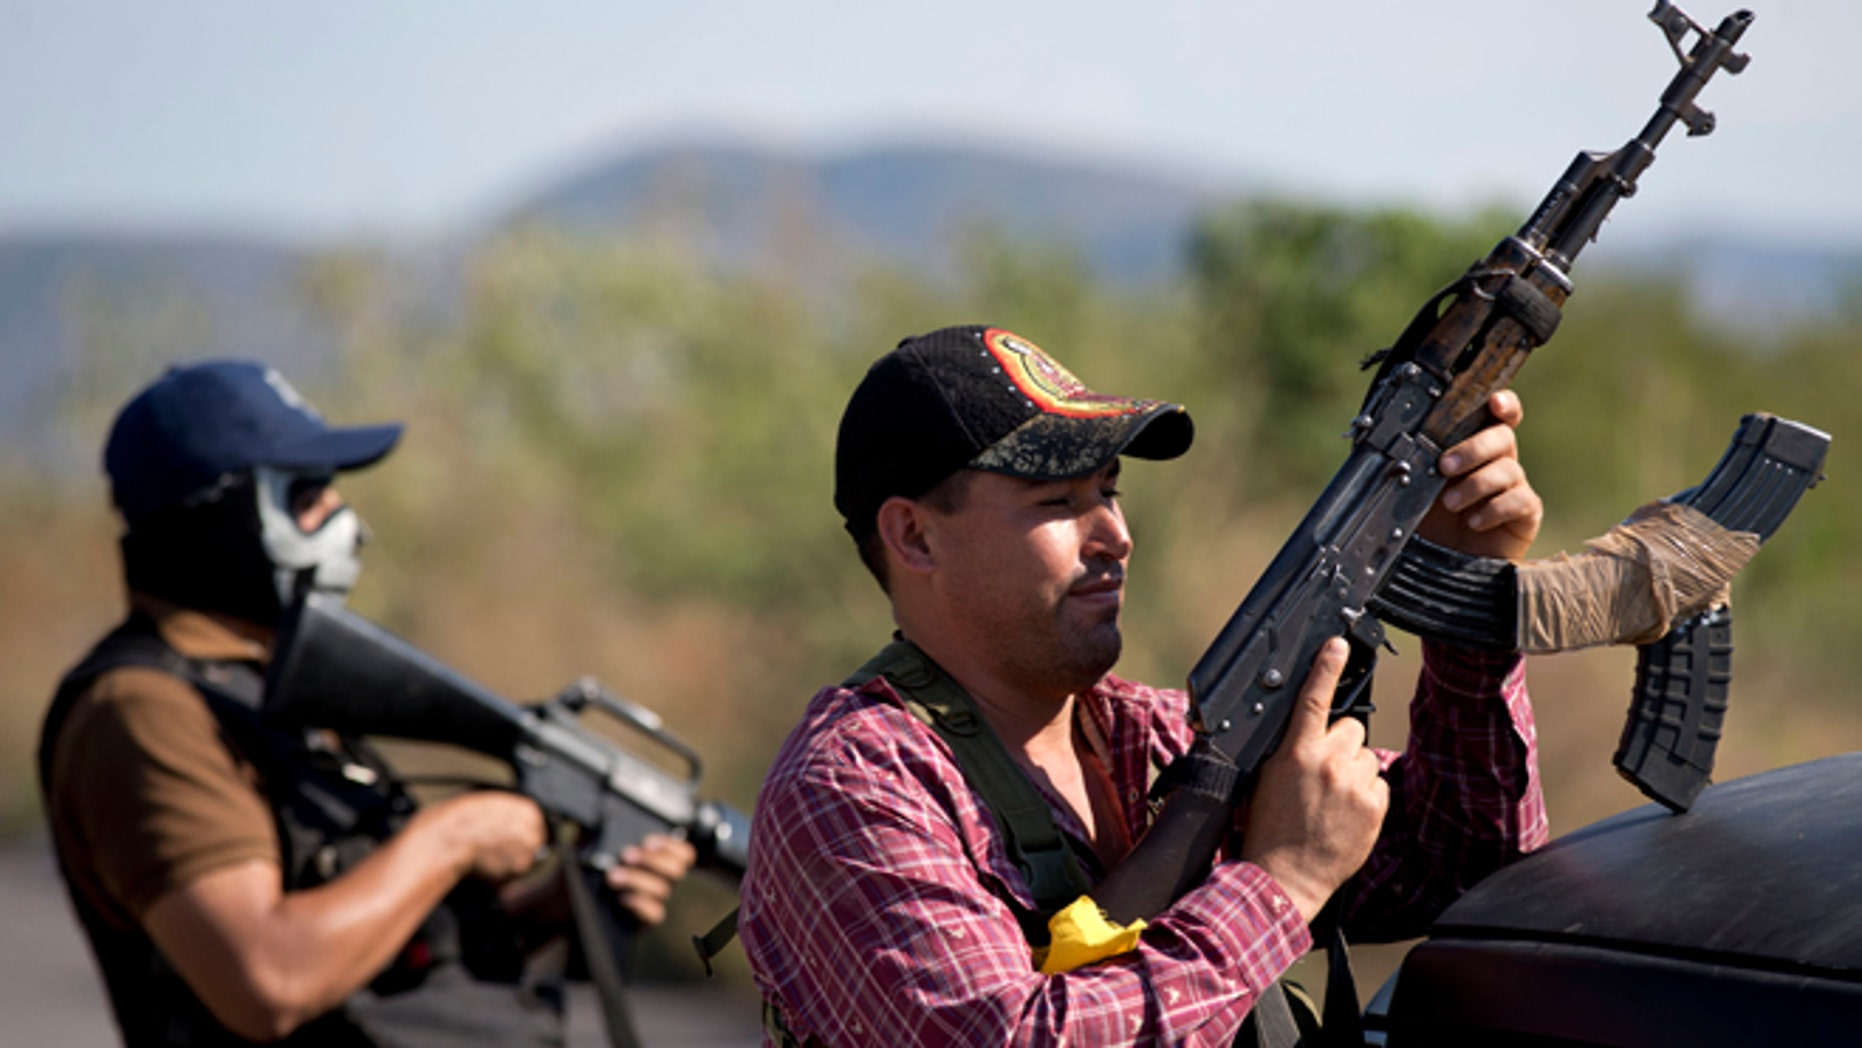 Armed men from the Self-Defense Council of Michoacán at the entrance of Antúnez, Mexico, Jan. 14, 2014.